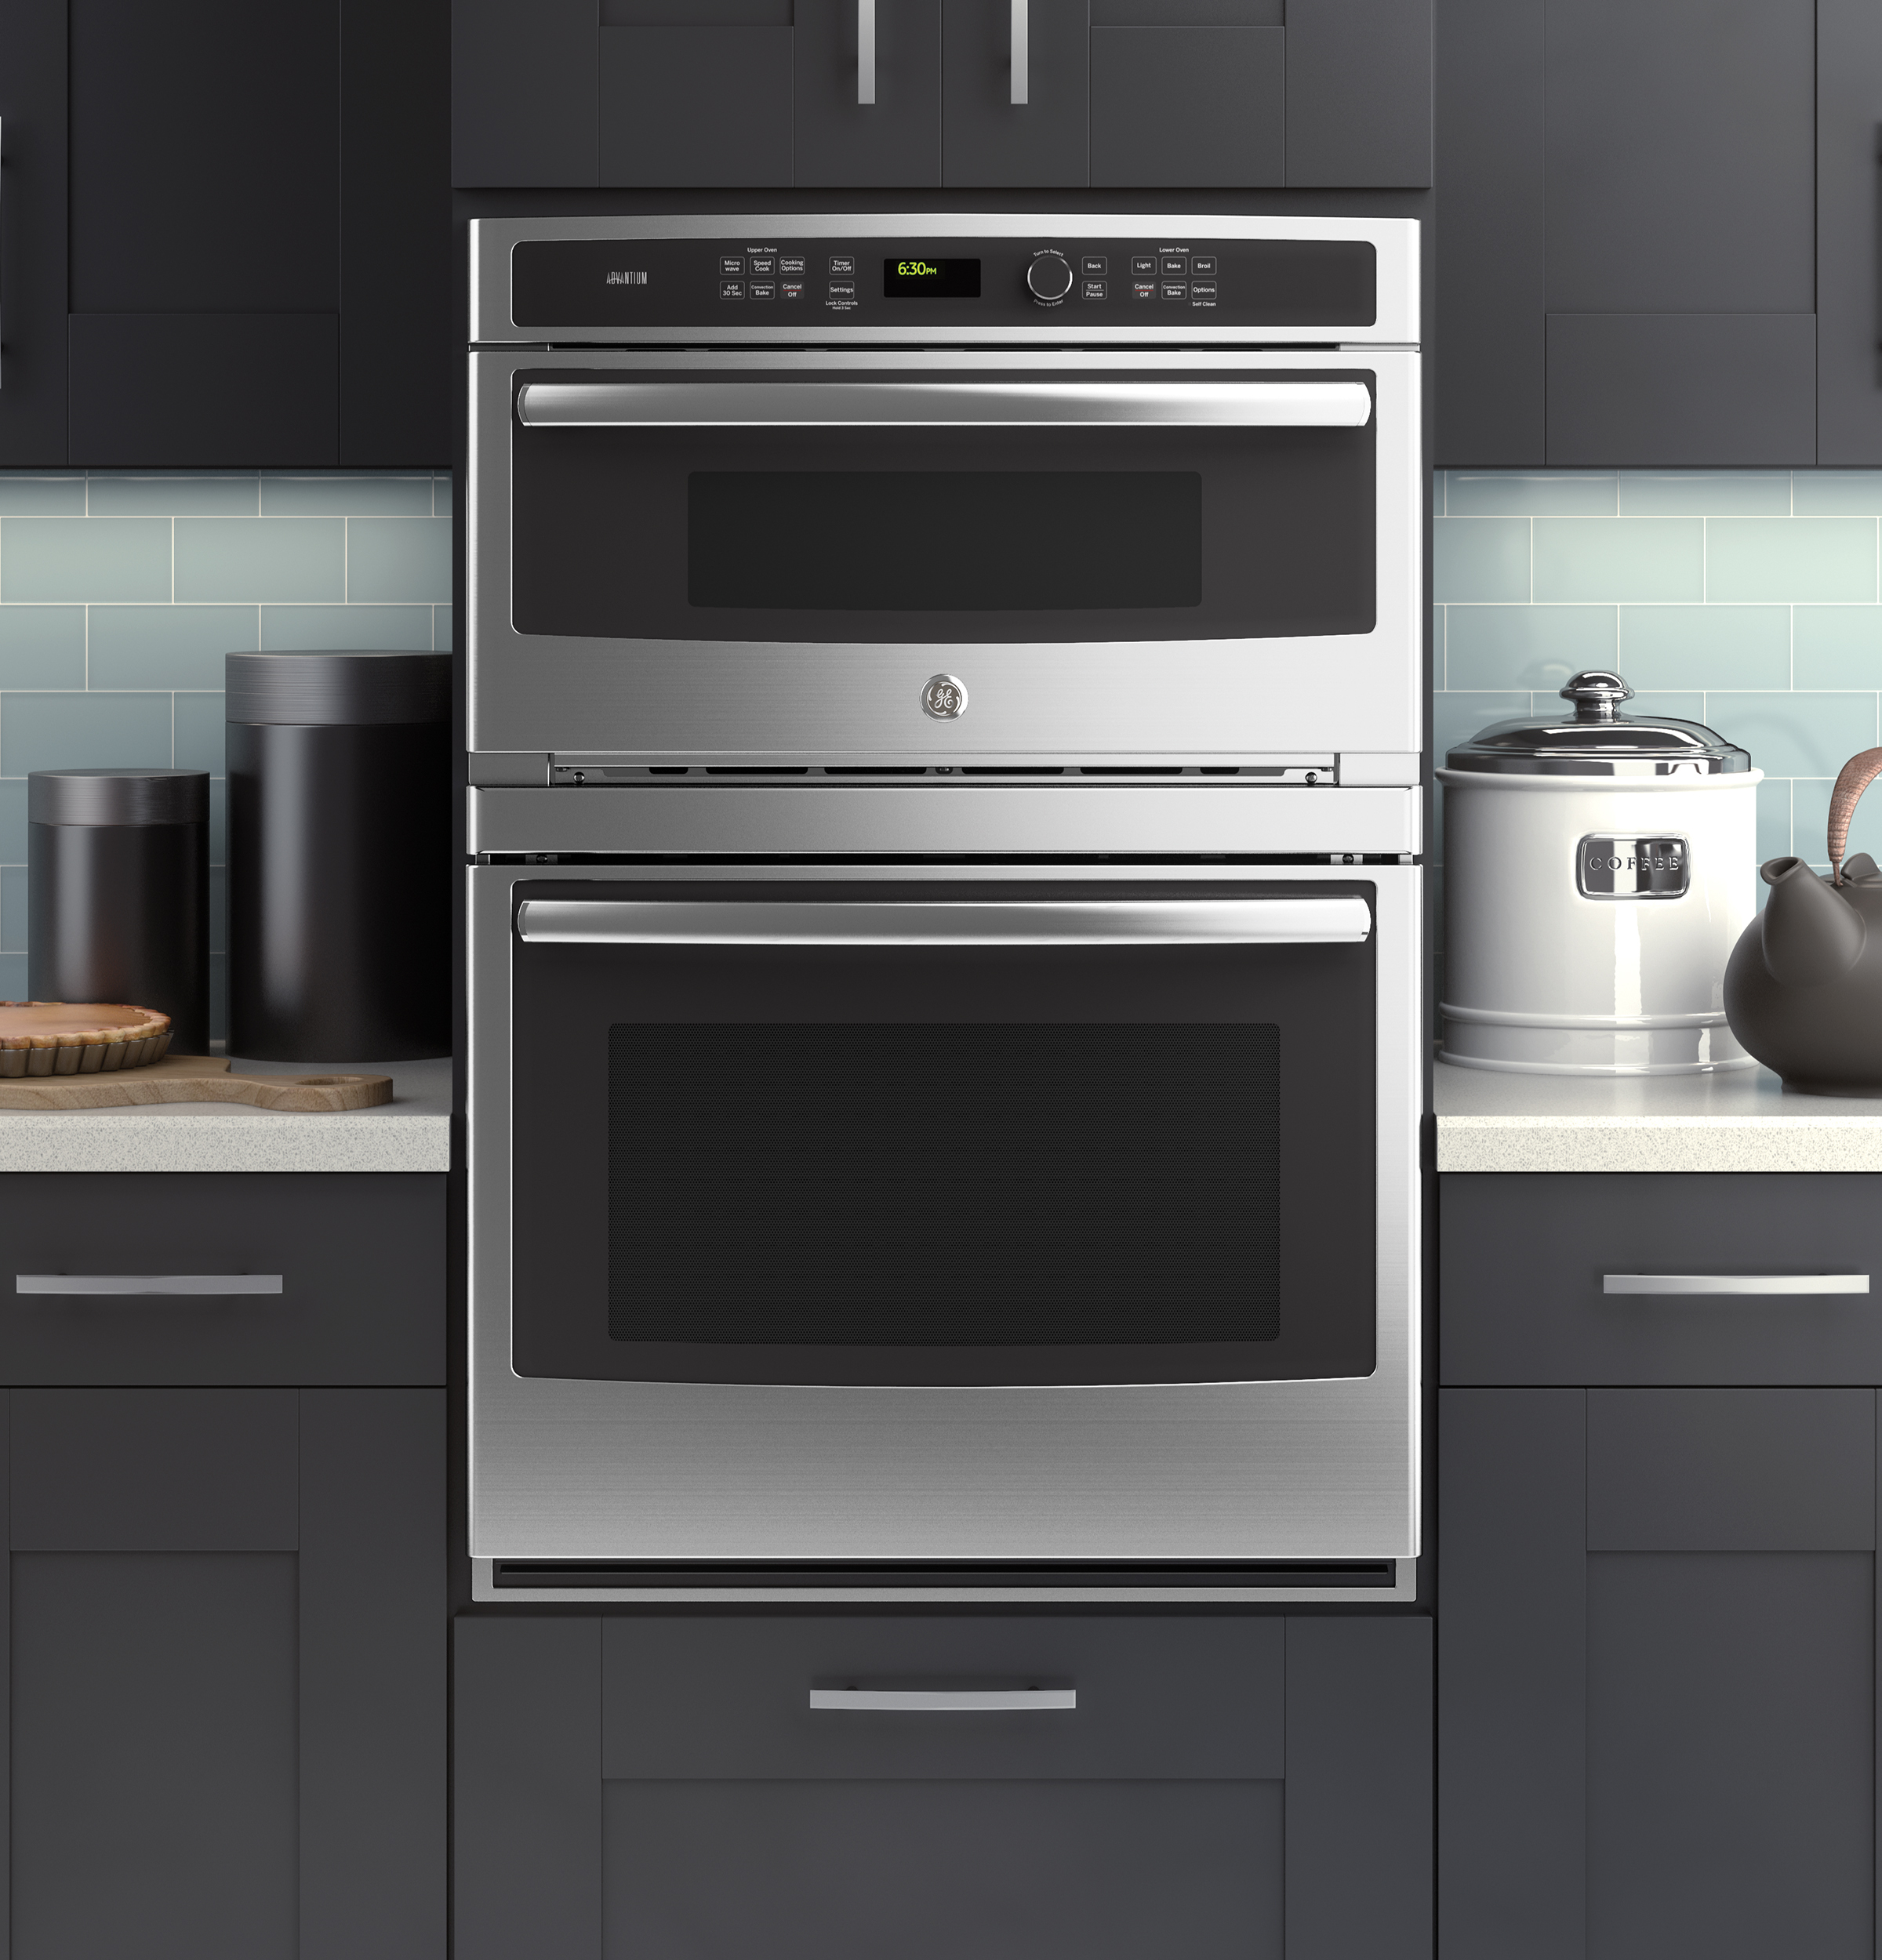 Kitchen Appliance Combos Ge Modernizes The Microwave Wall Oven Combination With Its Popular